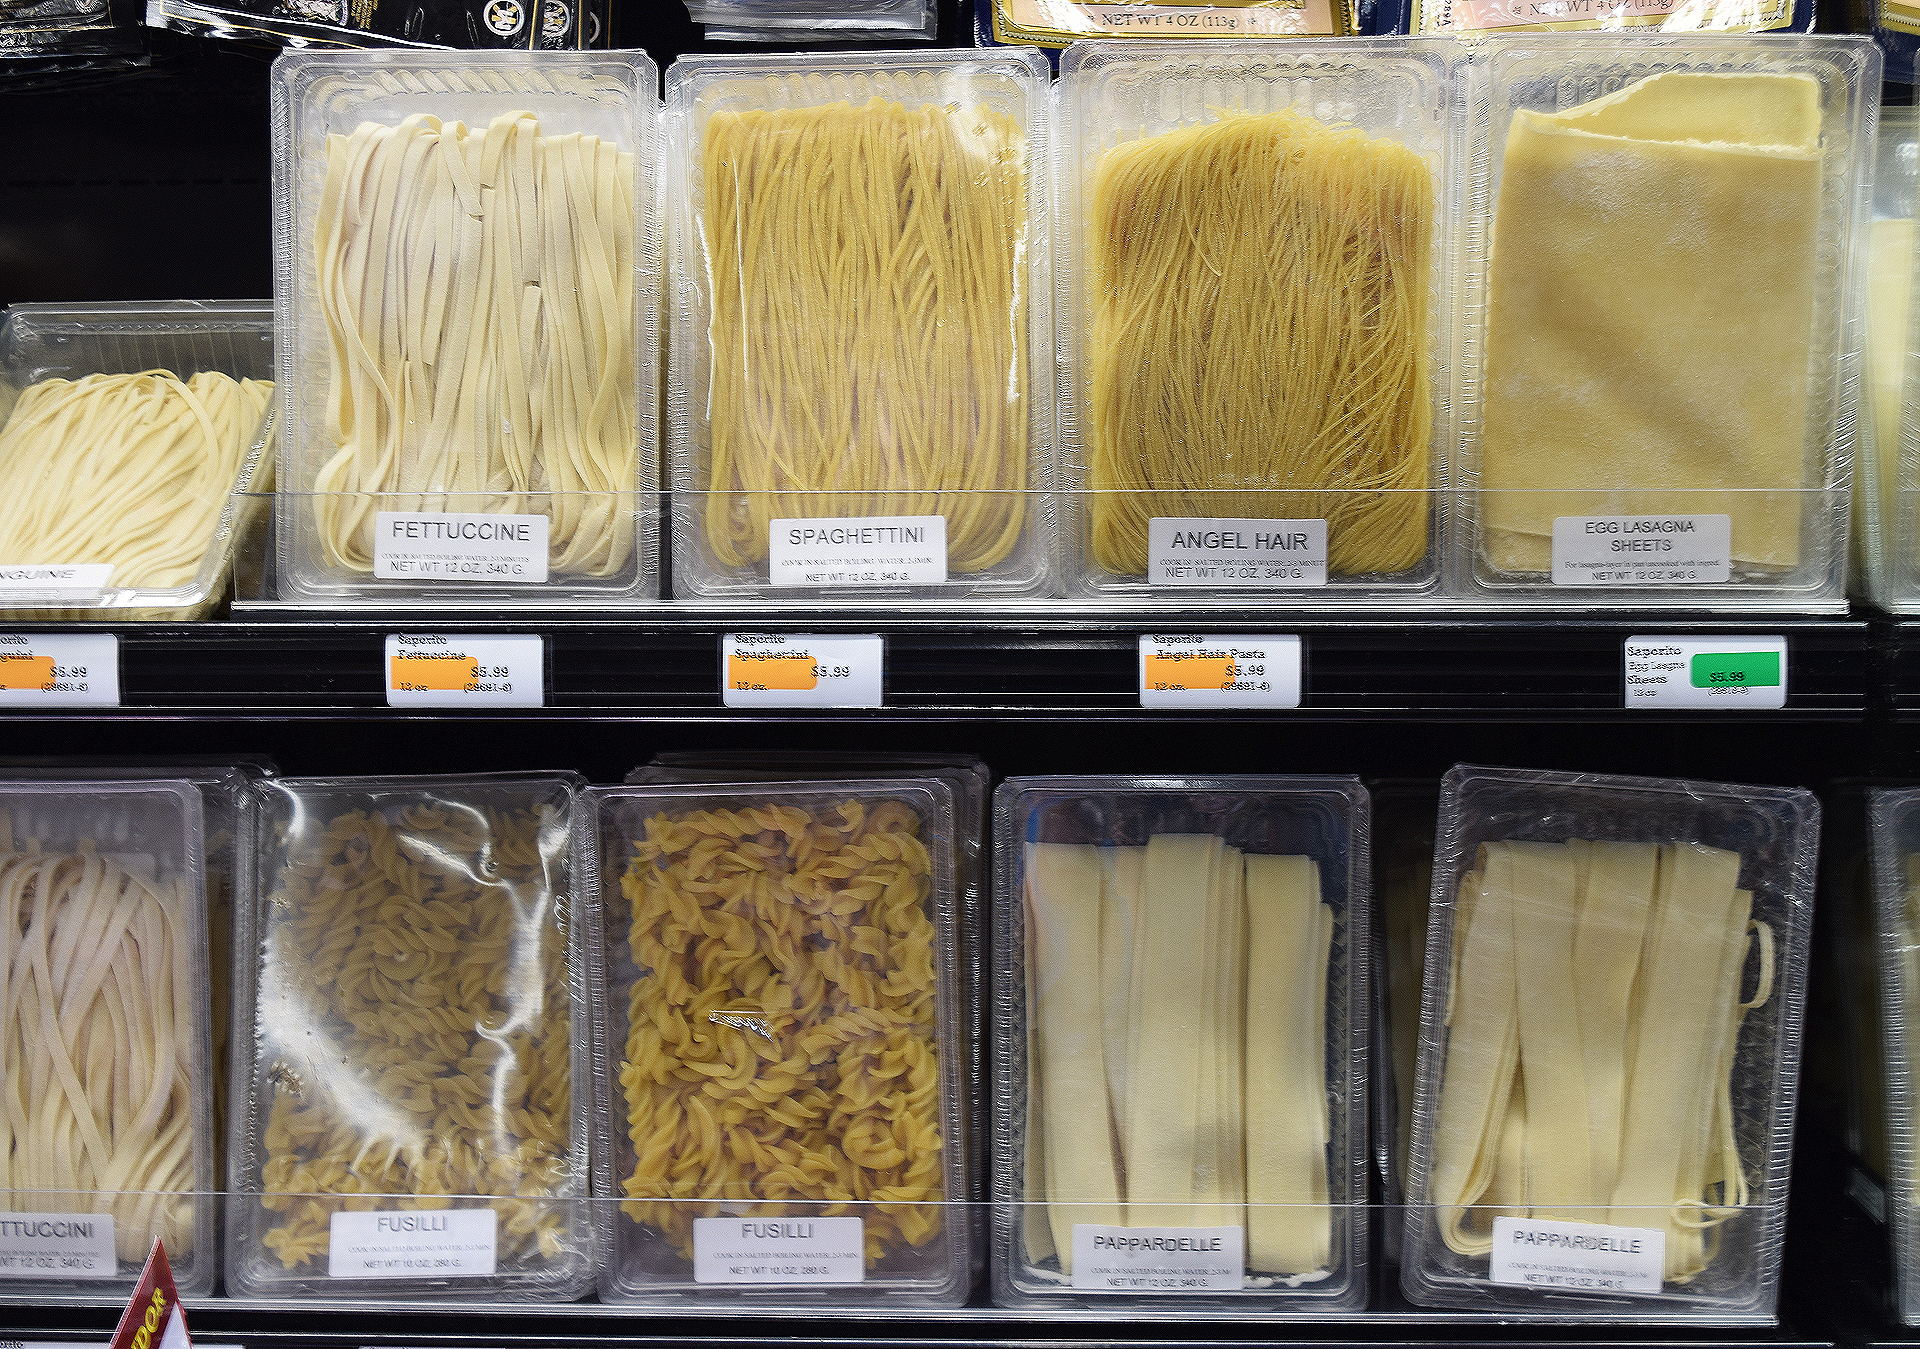 Sigona's carries a broad selection of the reasonably priced fresh pasta noodles from Saporito, whose plant is in Redwood City. The noodles are a tad thinner than those from other producers and when cooked have a pleasing flavor with still-toothy texture.